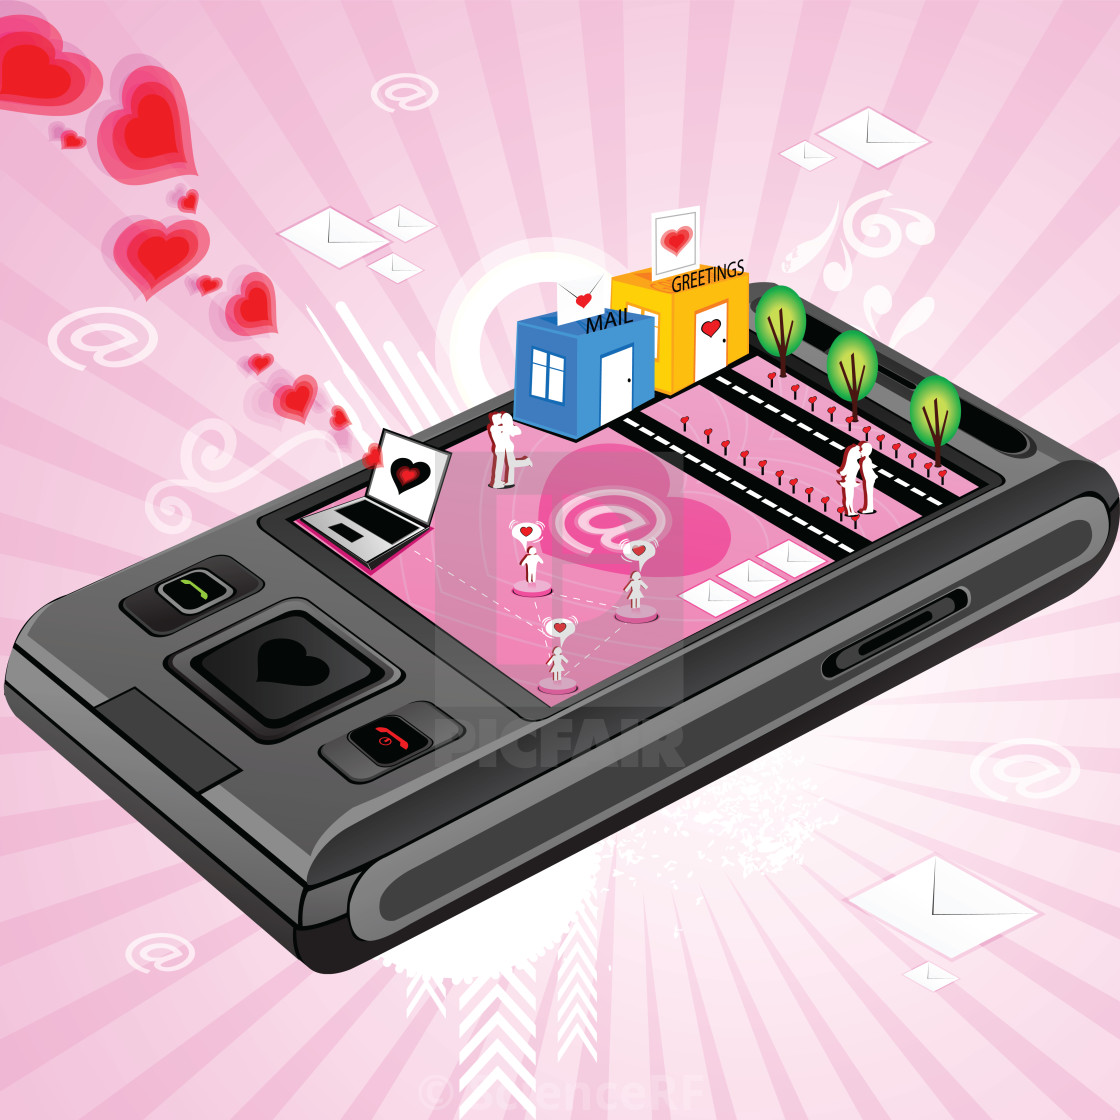 Messages Transferred Through Mobile Phone Illustration License